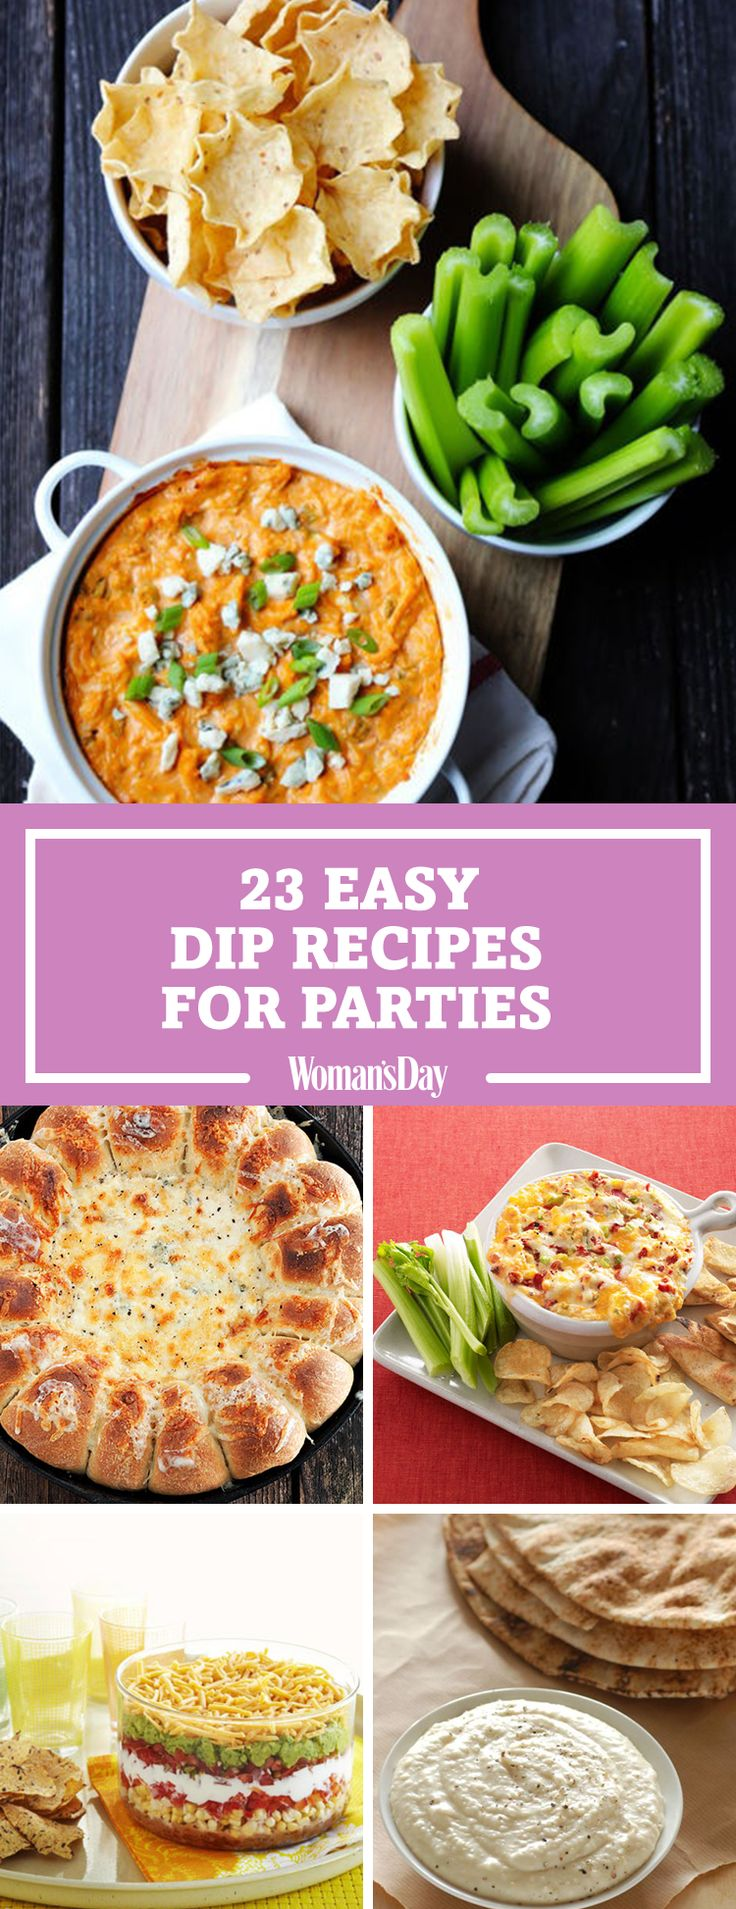 1000+ images about Party Recipes on Pinterest   Easy party food ...